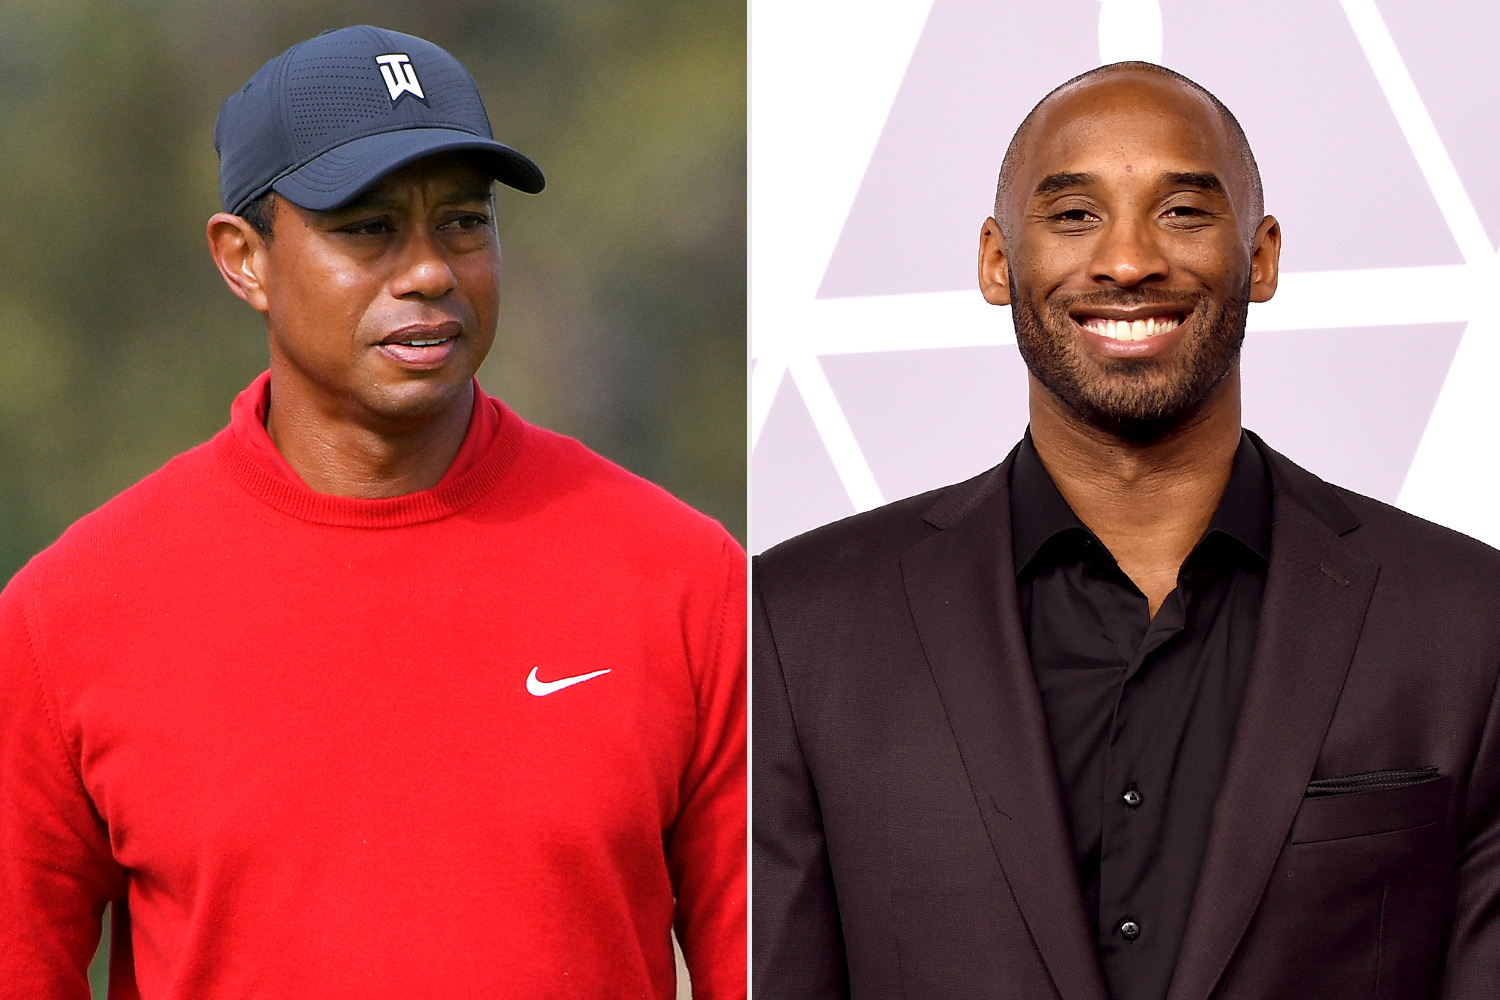 Tiger Woods and Kobe Bryant